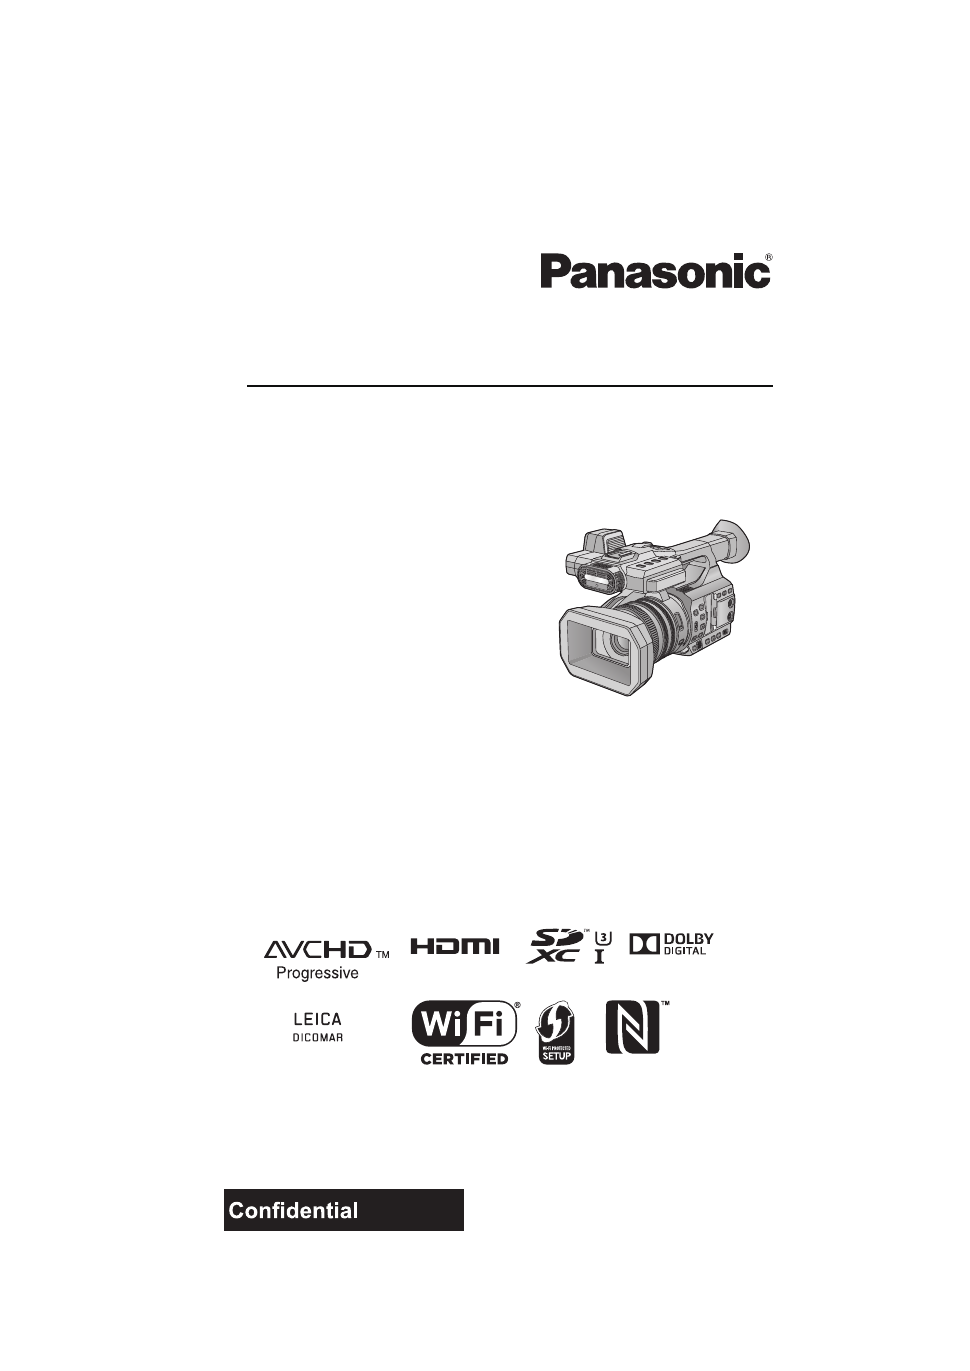 ... Array - panasonic x920 manual rh panasonic x920 manual topmalawis de